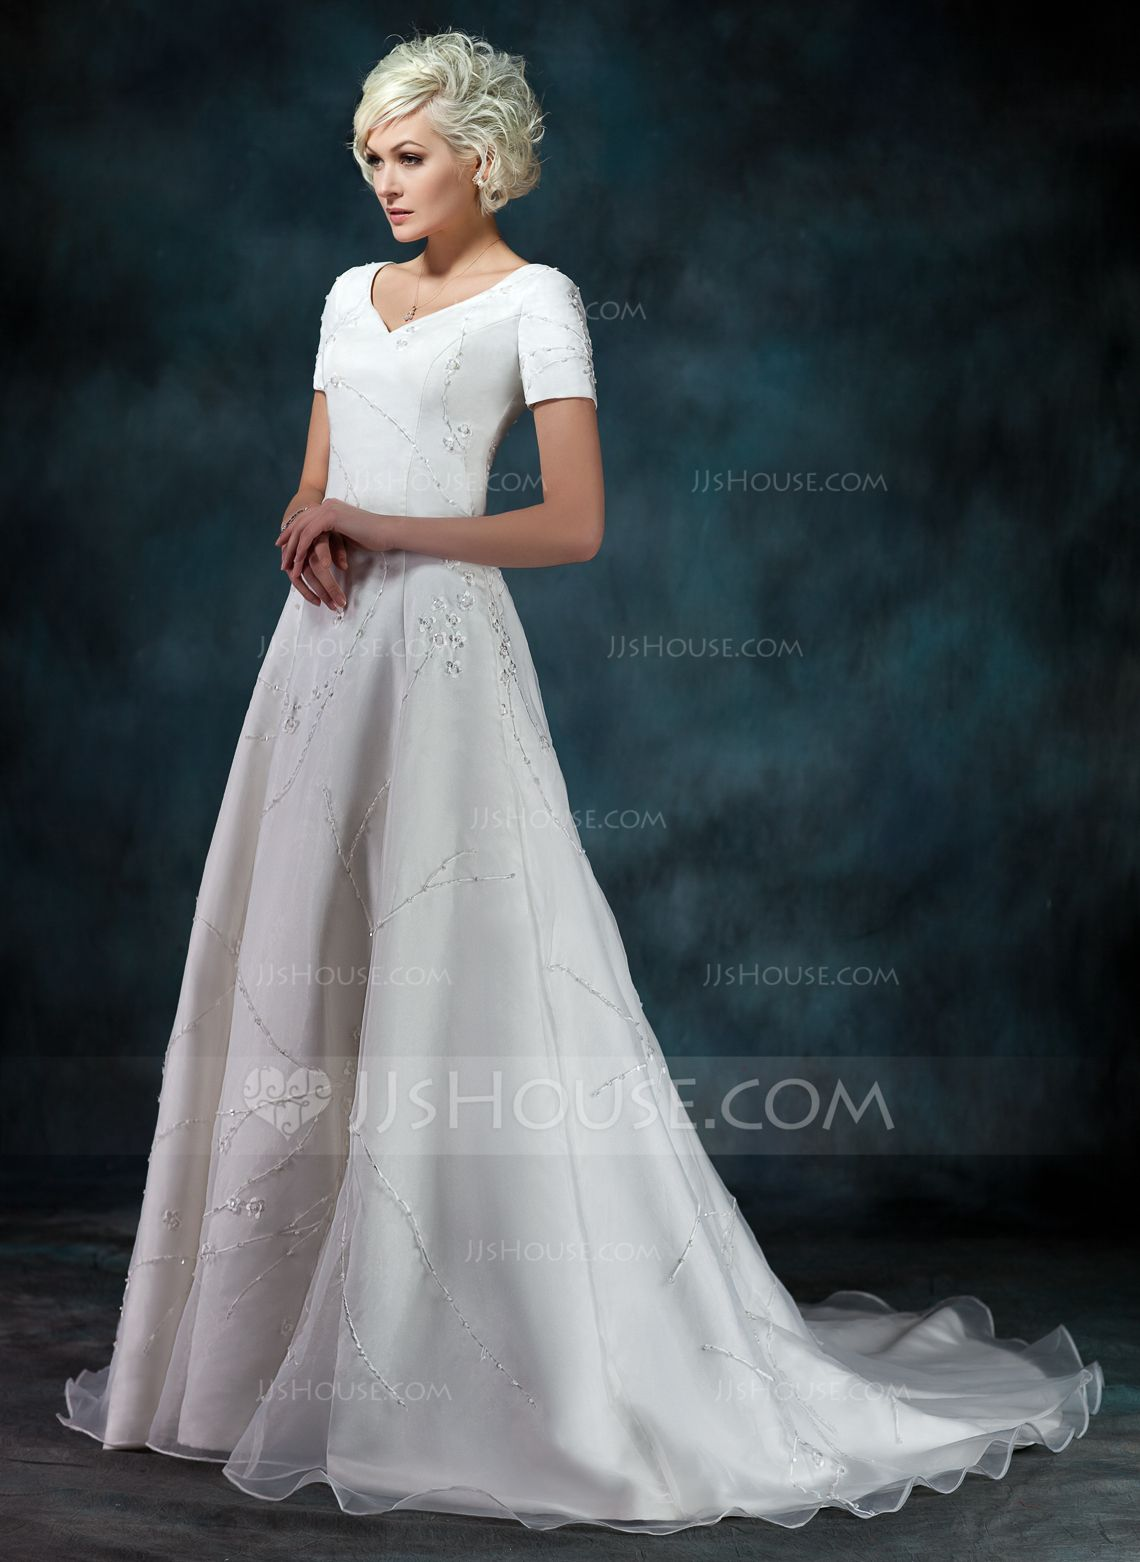 Alineprincess vneck court train satin organza wedding dress with